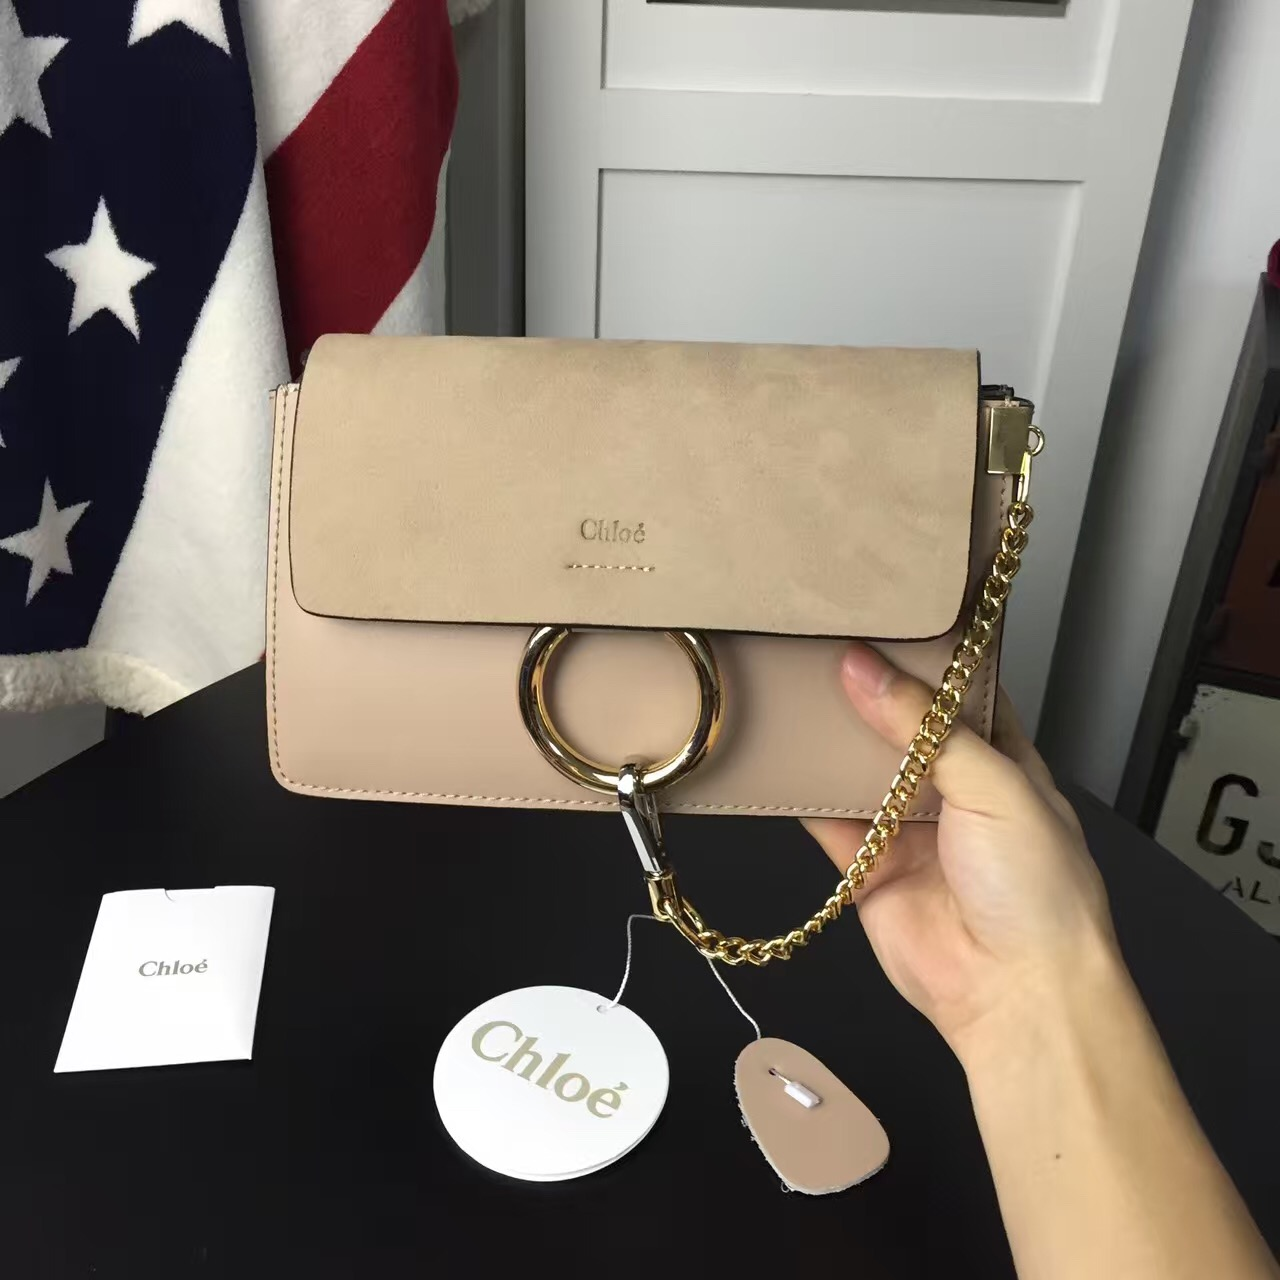 Chloe Faye Small Shoulder Bag Apricot Suede Clutch